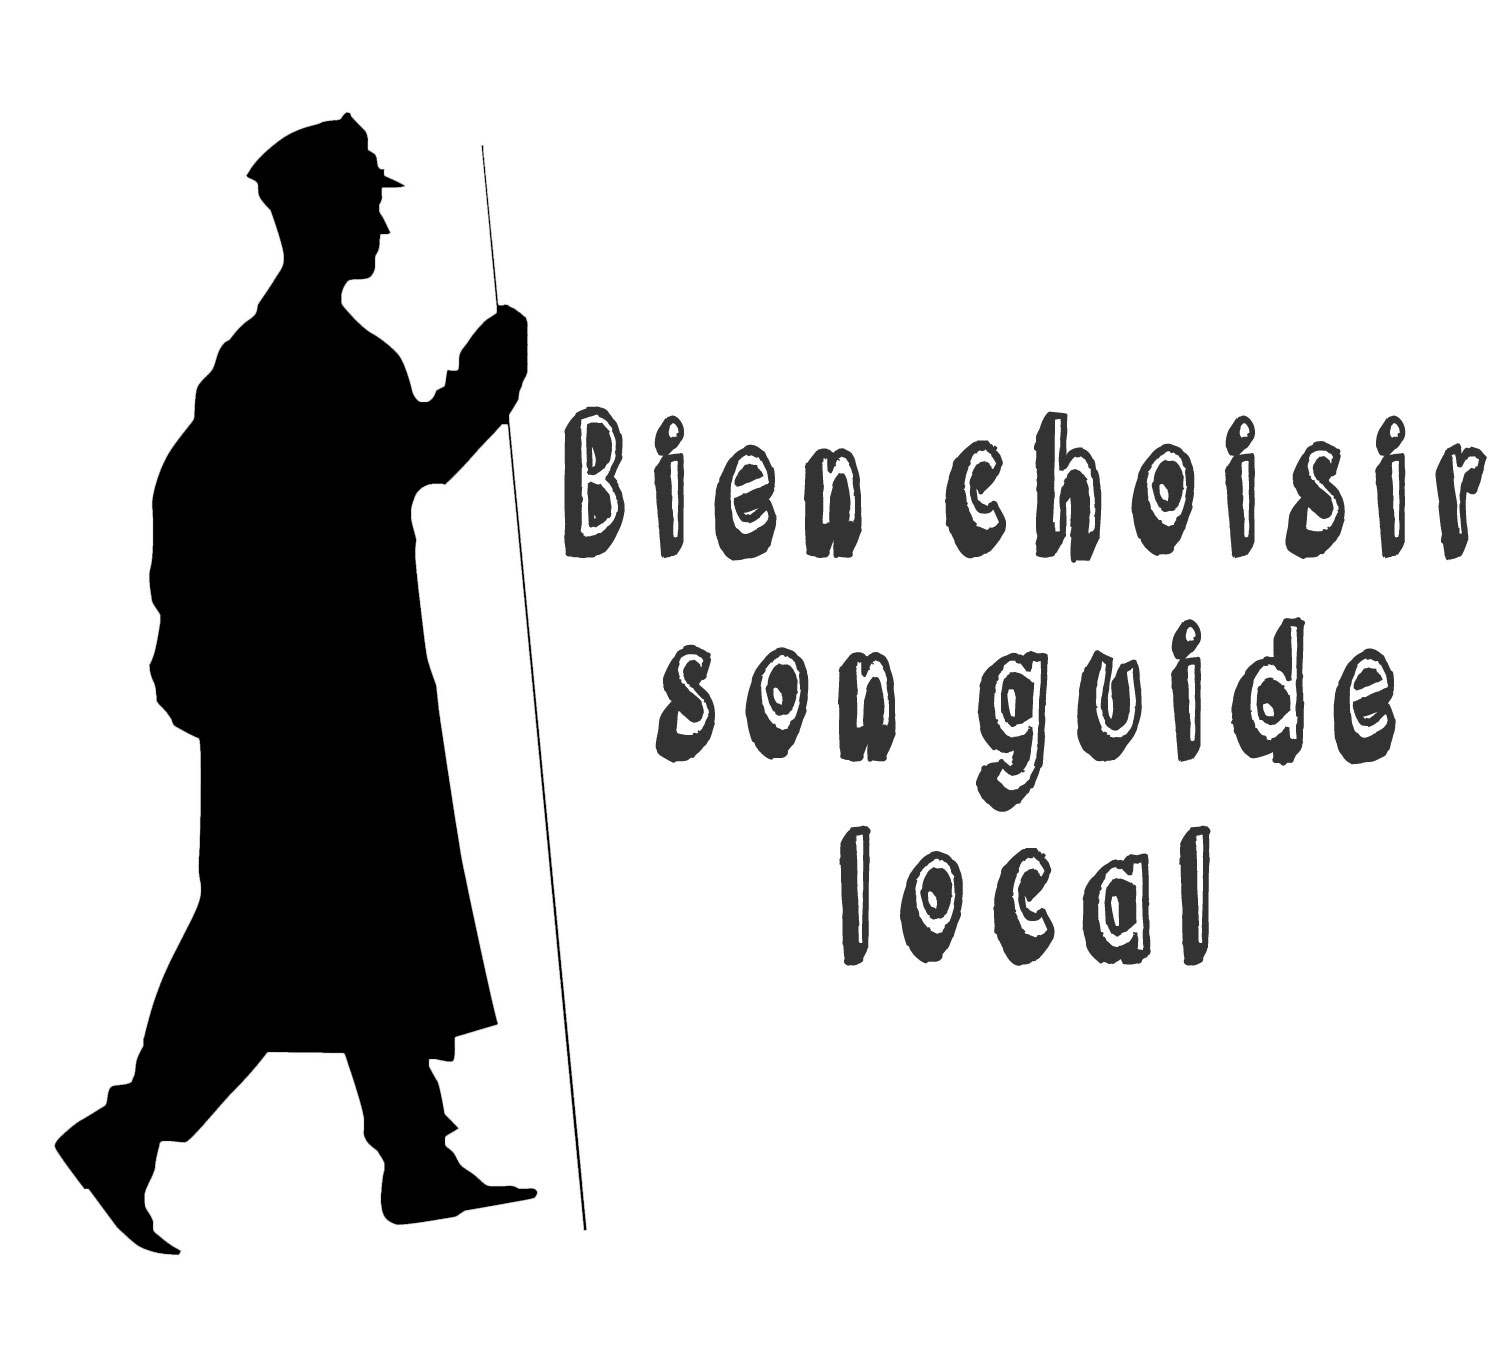 Bien_choisir_son_guide_local